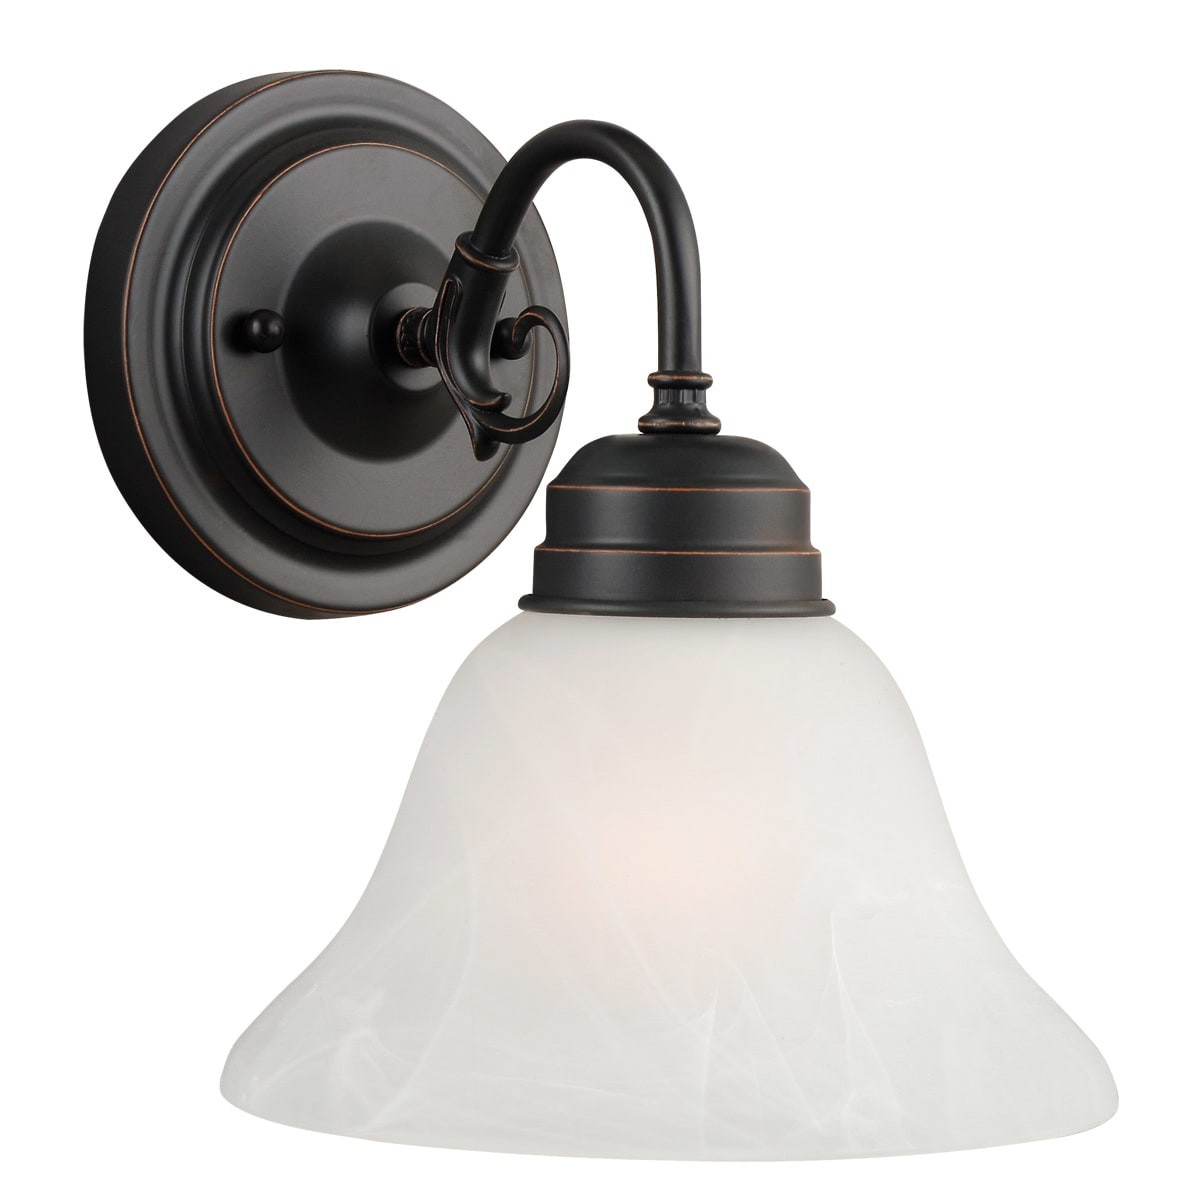 Design House 514497 Oil Rubbed Bronze Millbridge Traditional Classic 1 Light Up Down Lighting Wall Sconce With Alabaster Glass Faucet Com